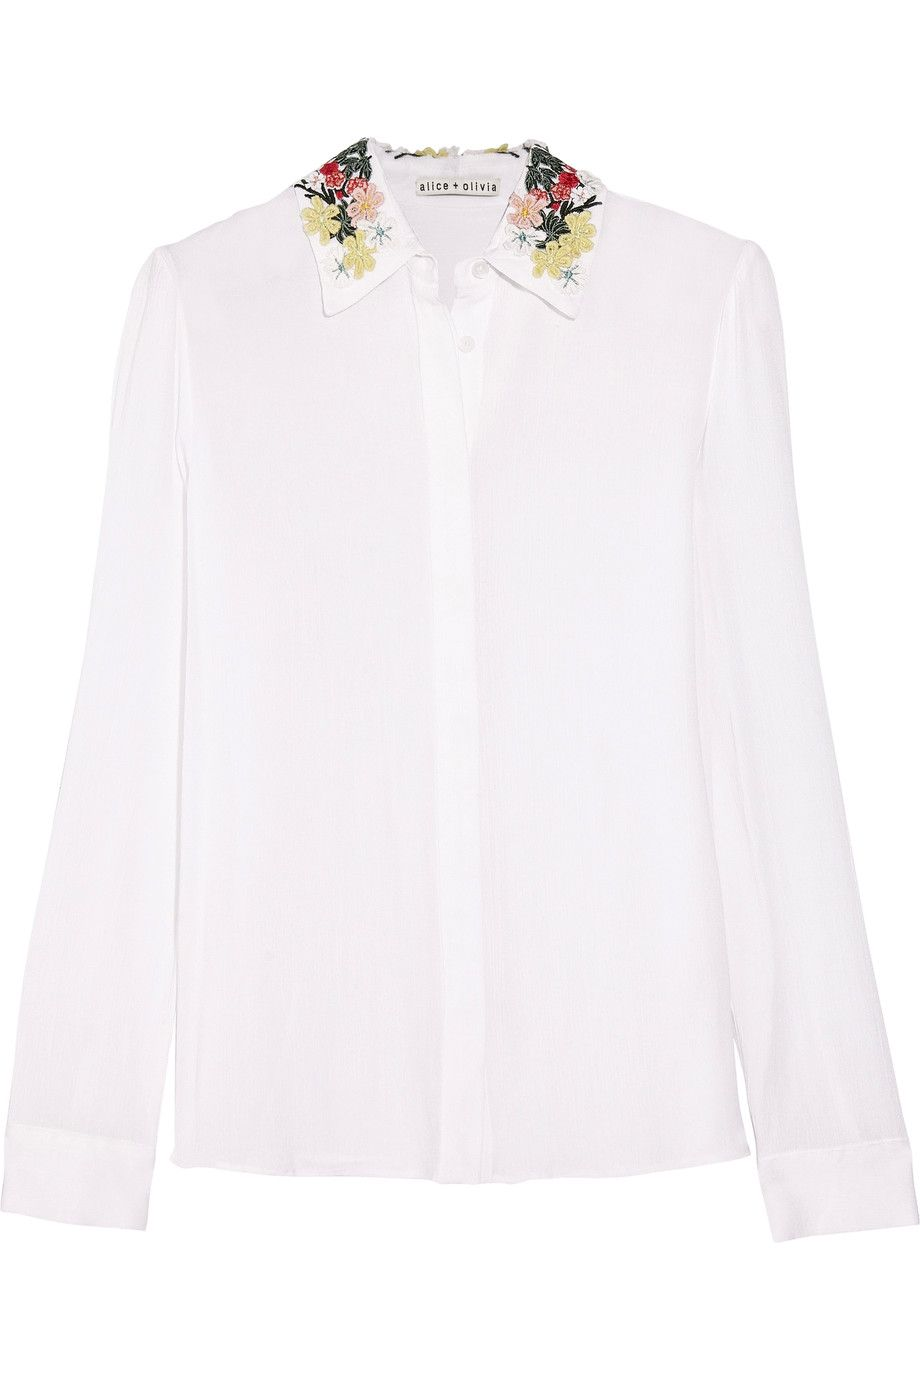 Shop on-sale Alice + Olivia Saira embroidered voile shirt. Browse other  discount designer